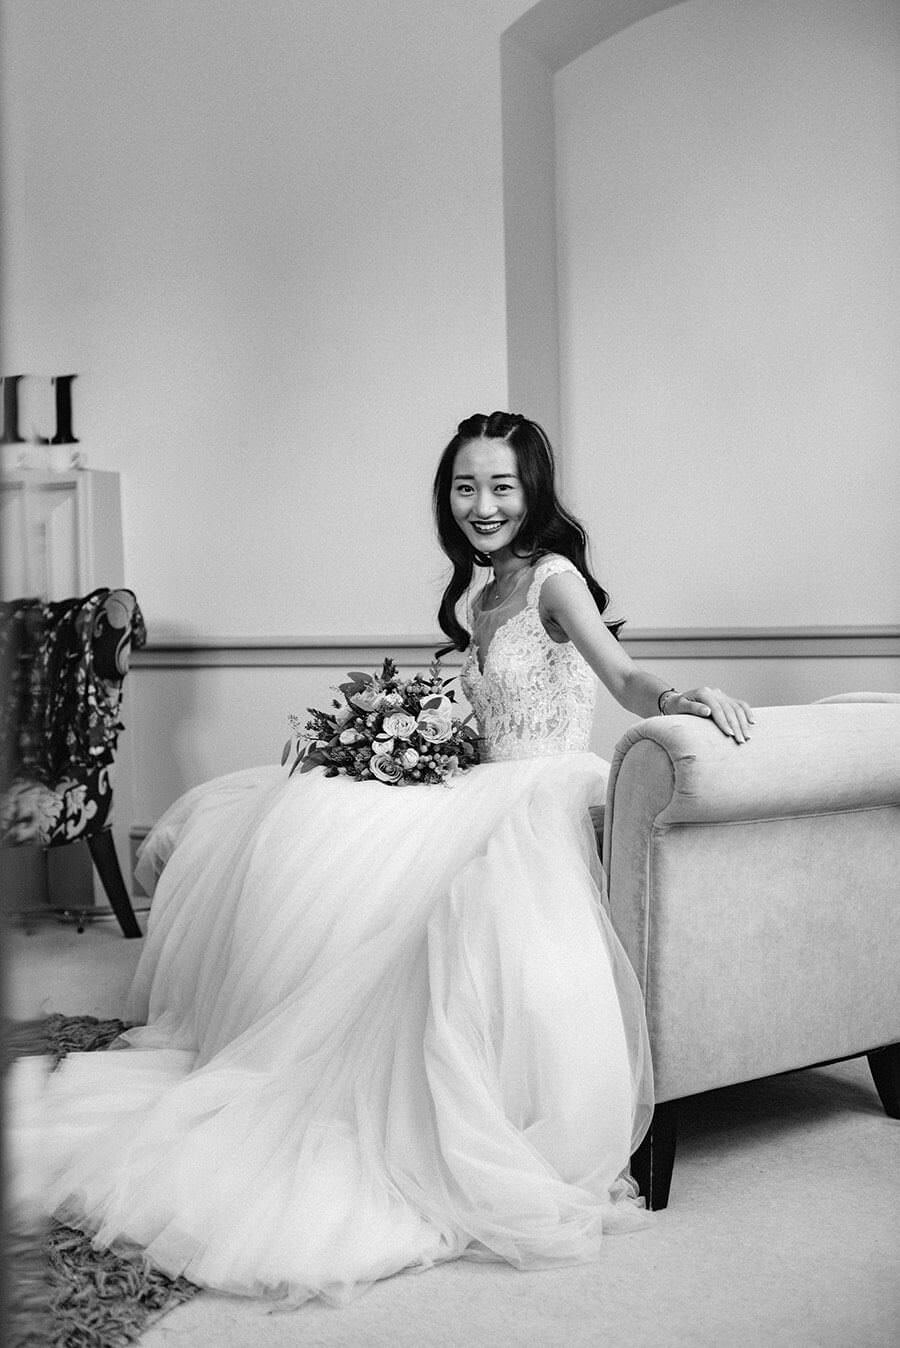 chinese bride wearing white wedding dress in black and white